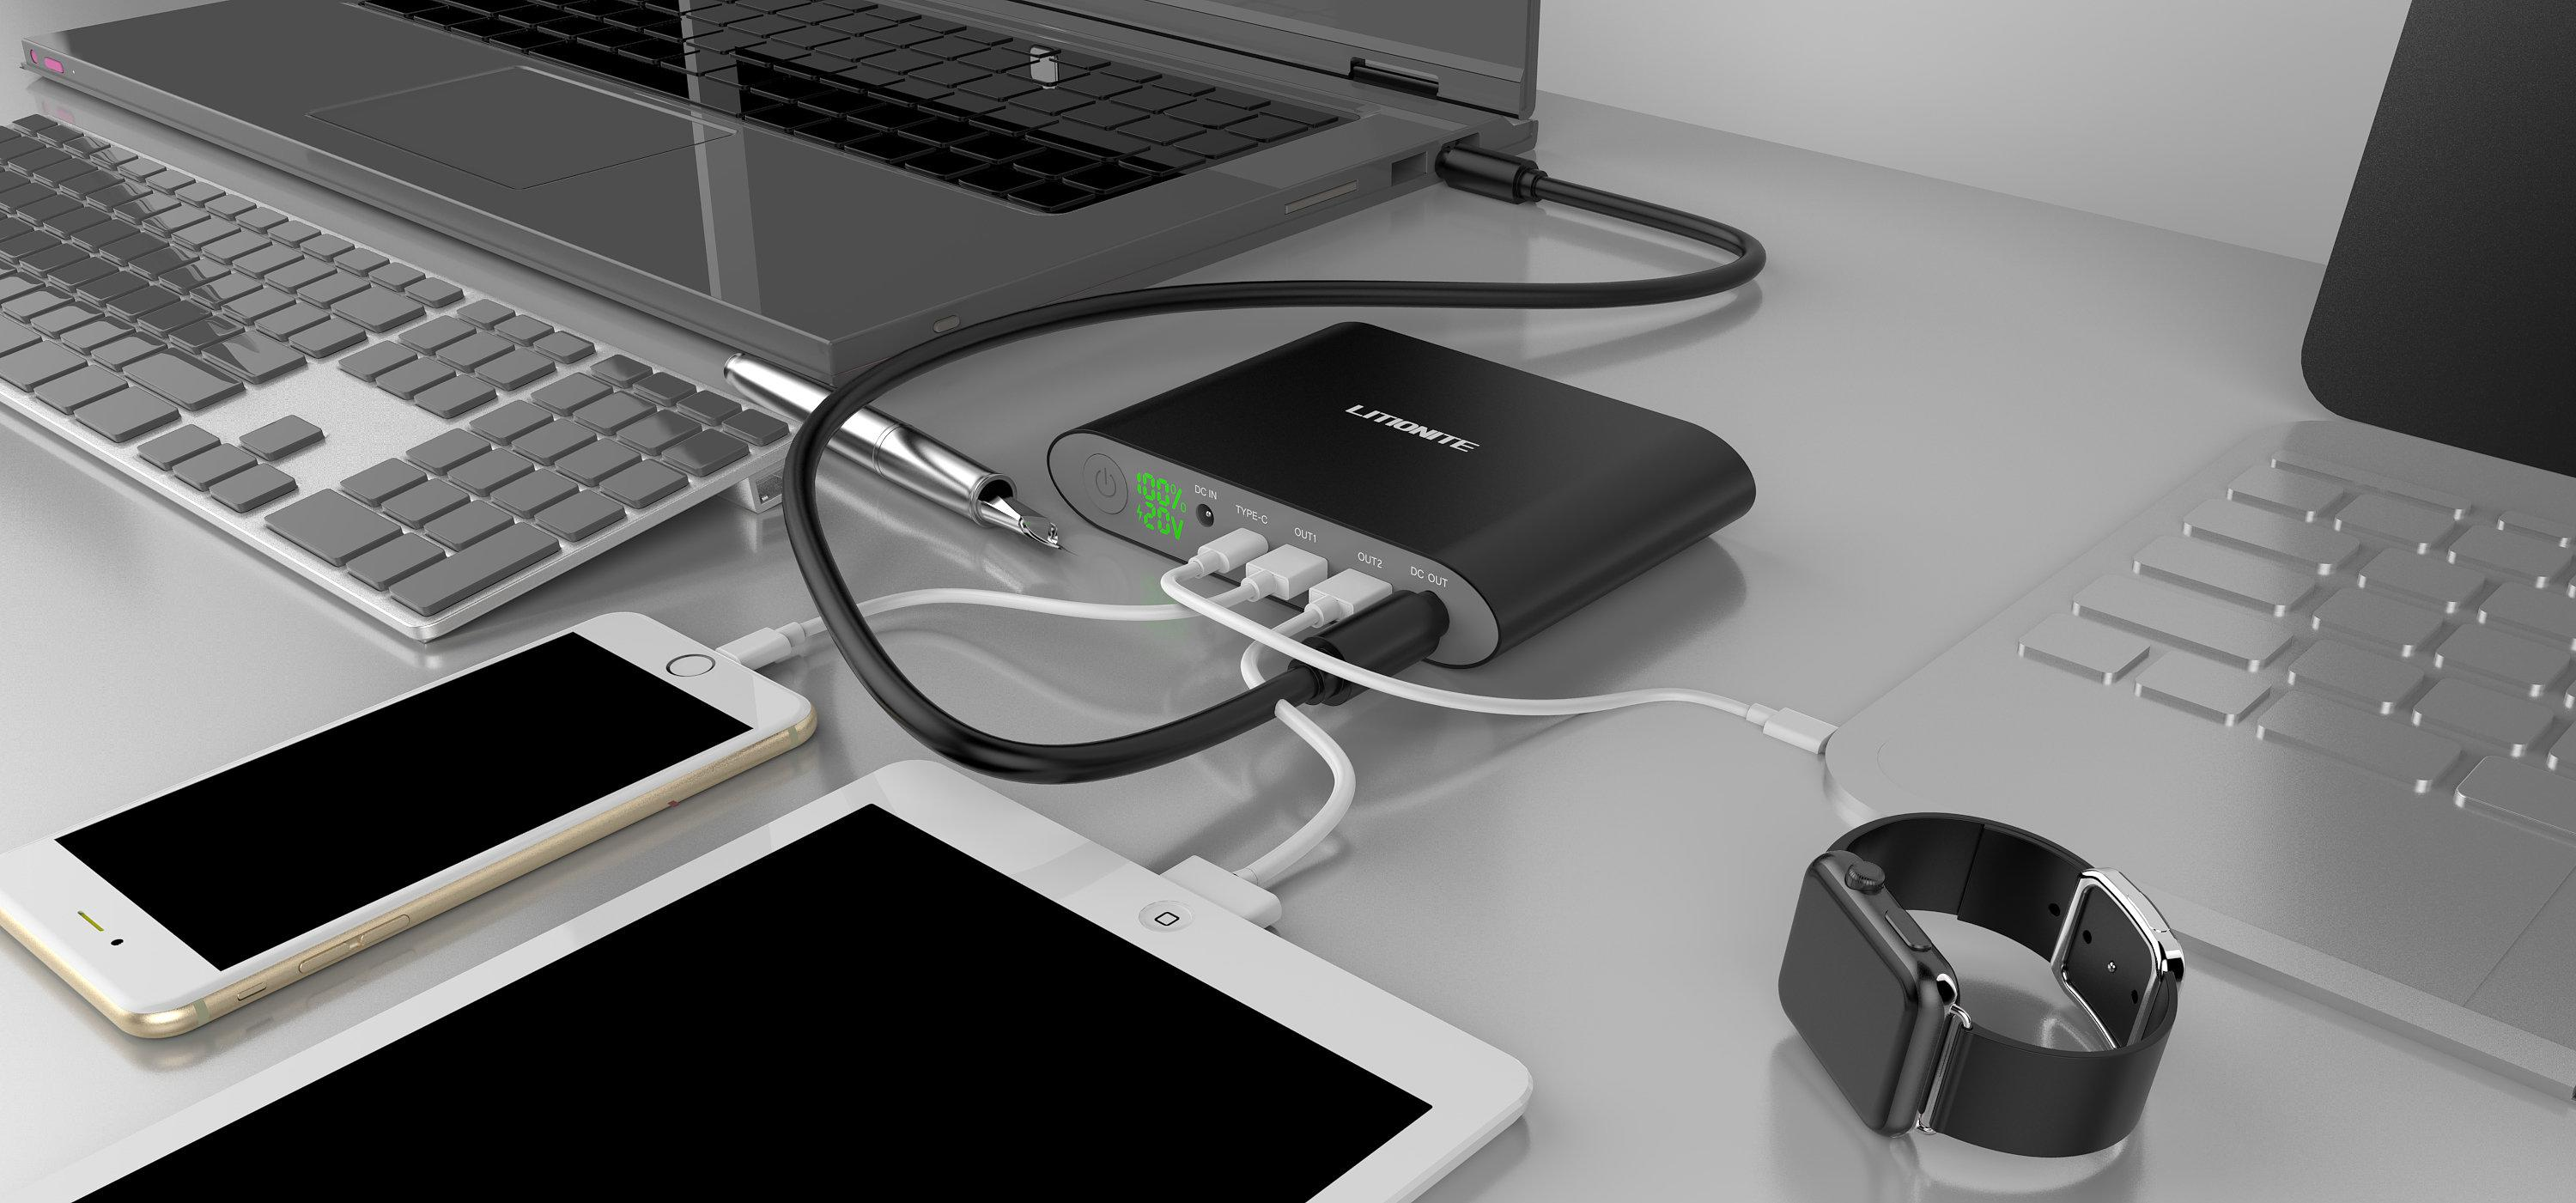 Power Banks - keep your devices powered on the move!